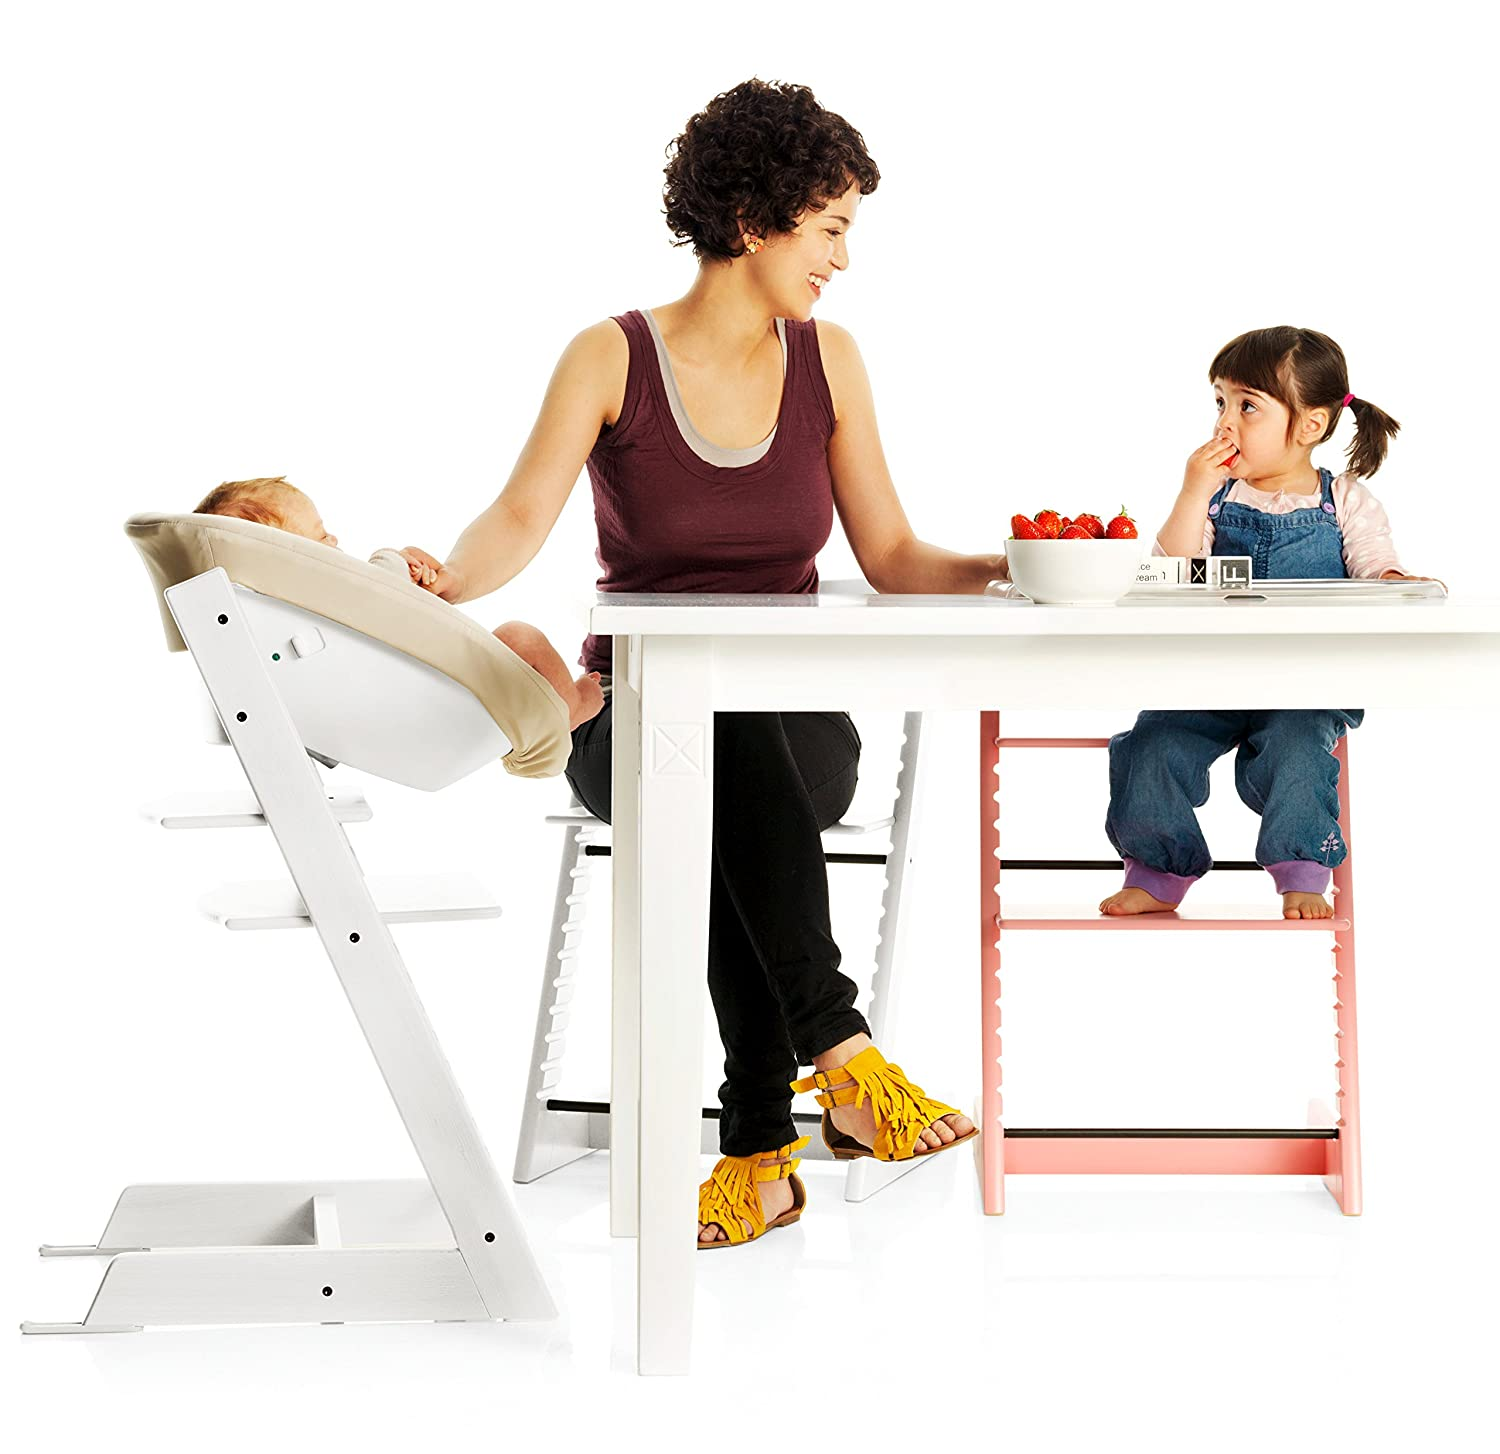 luxury stokke high chair. Black Bedroom Furniture Sets. Home Design Ideas